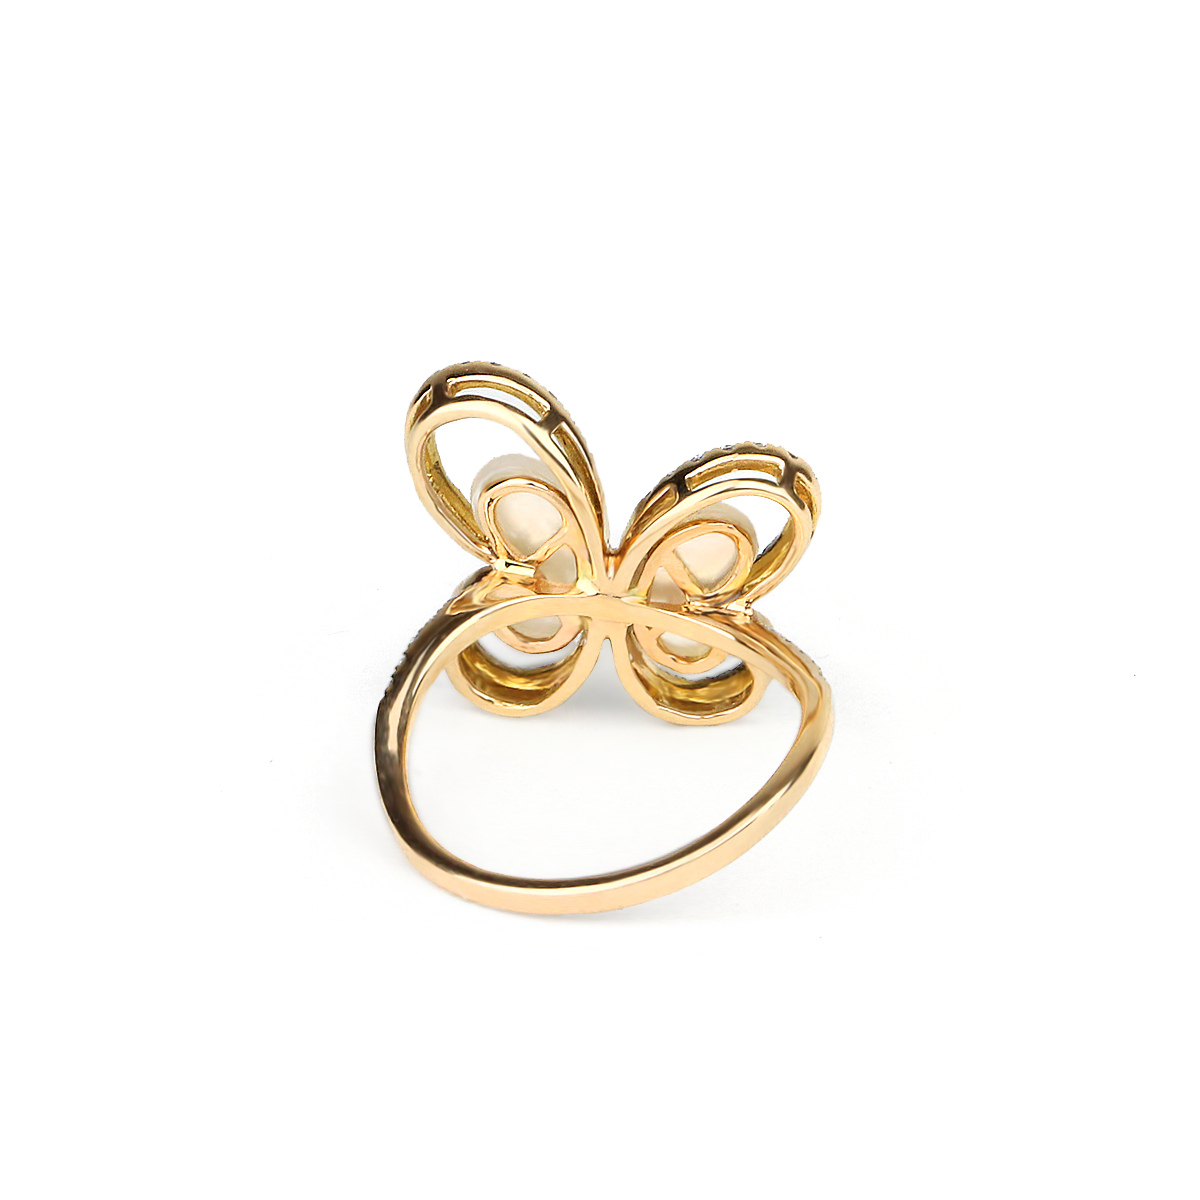 Mother Of Pearl Butterfly Ring With Lining Diamonds - alternate